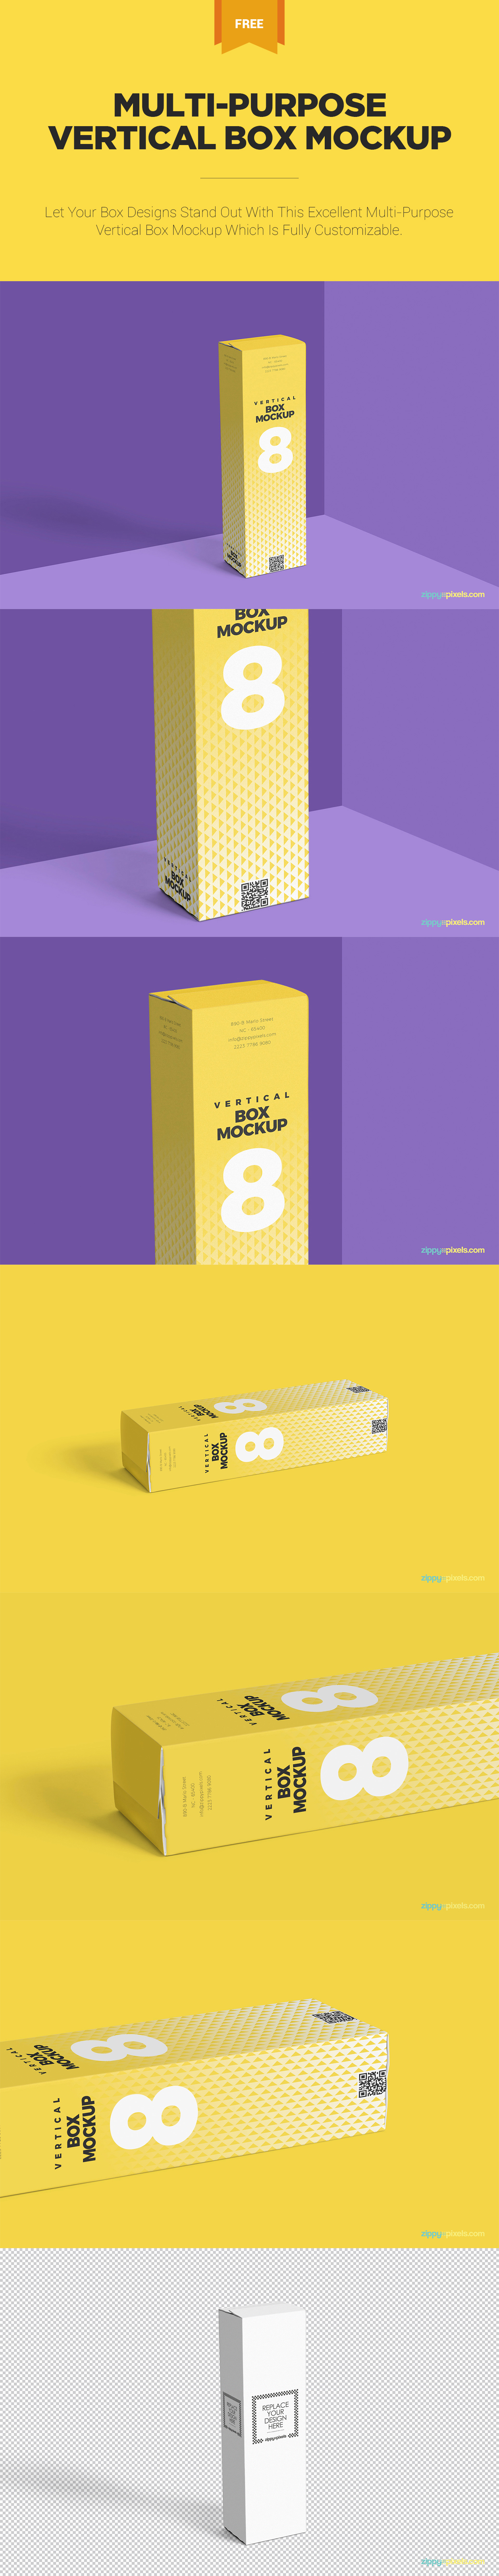 Download Free Vertical Box Mockup For Cardboard Zippypixels Box Mockup Mockup Packaging Mockup